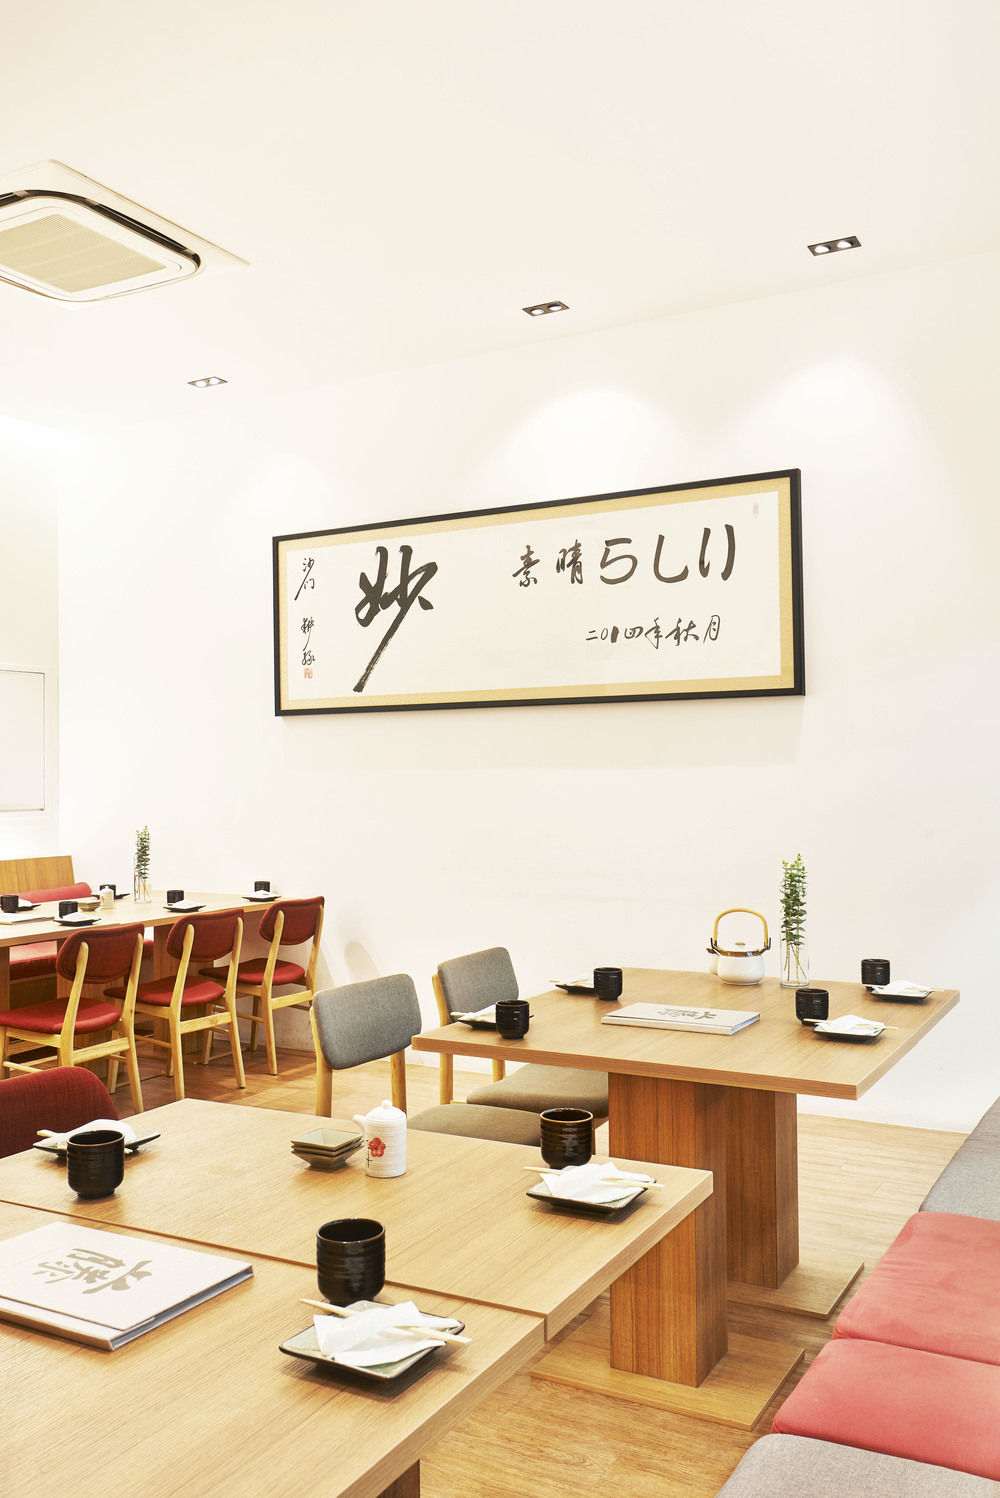 Teng Bespoke Expansion_05.jpg